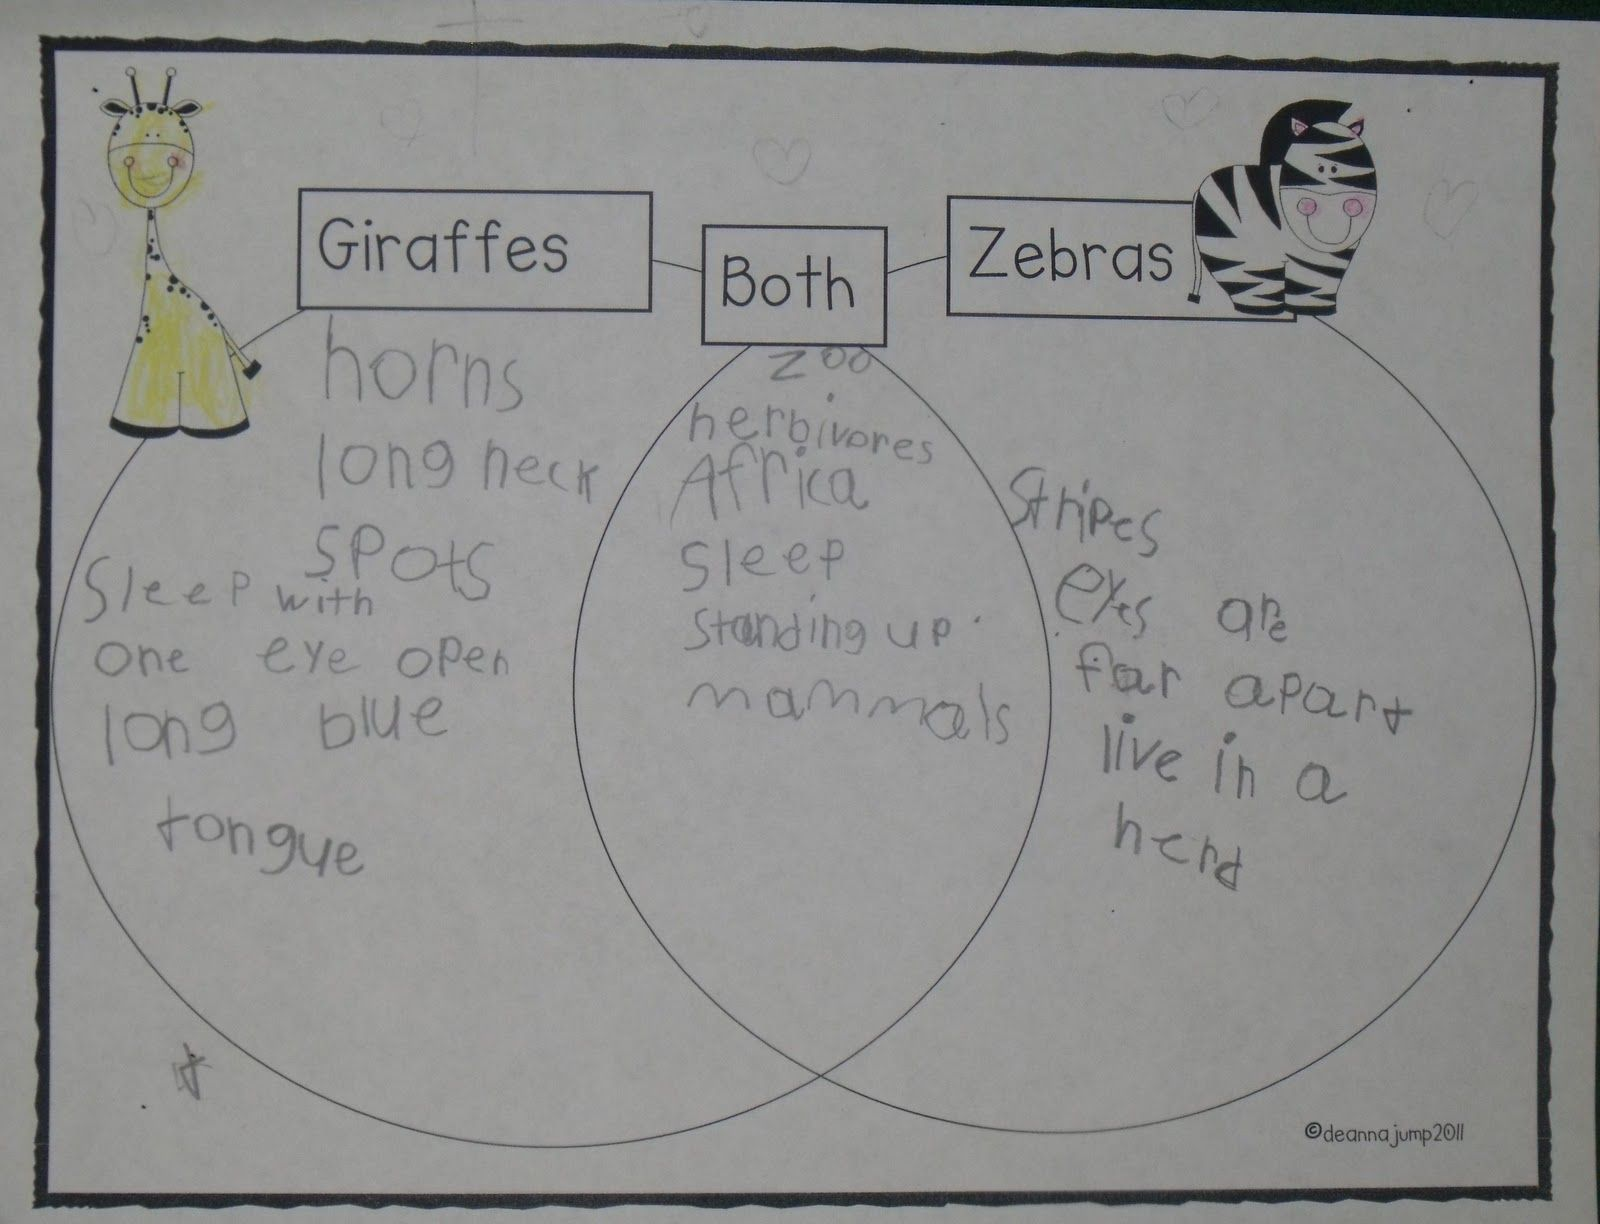 Zoo venn diagram comparing giraffes and zebras farmzoo zoo venn diagram comparing giraffes and zebras pooptronica Images